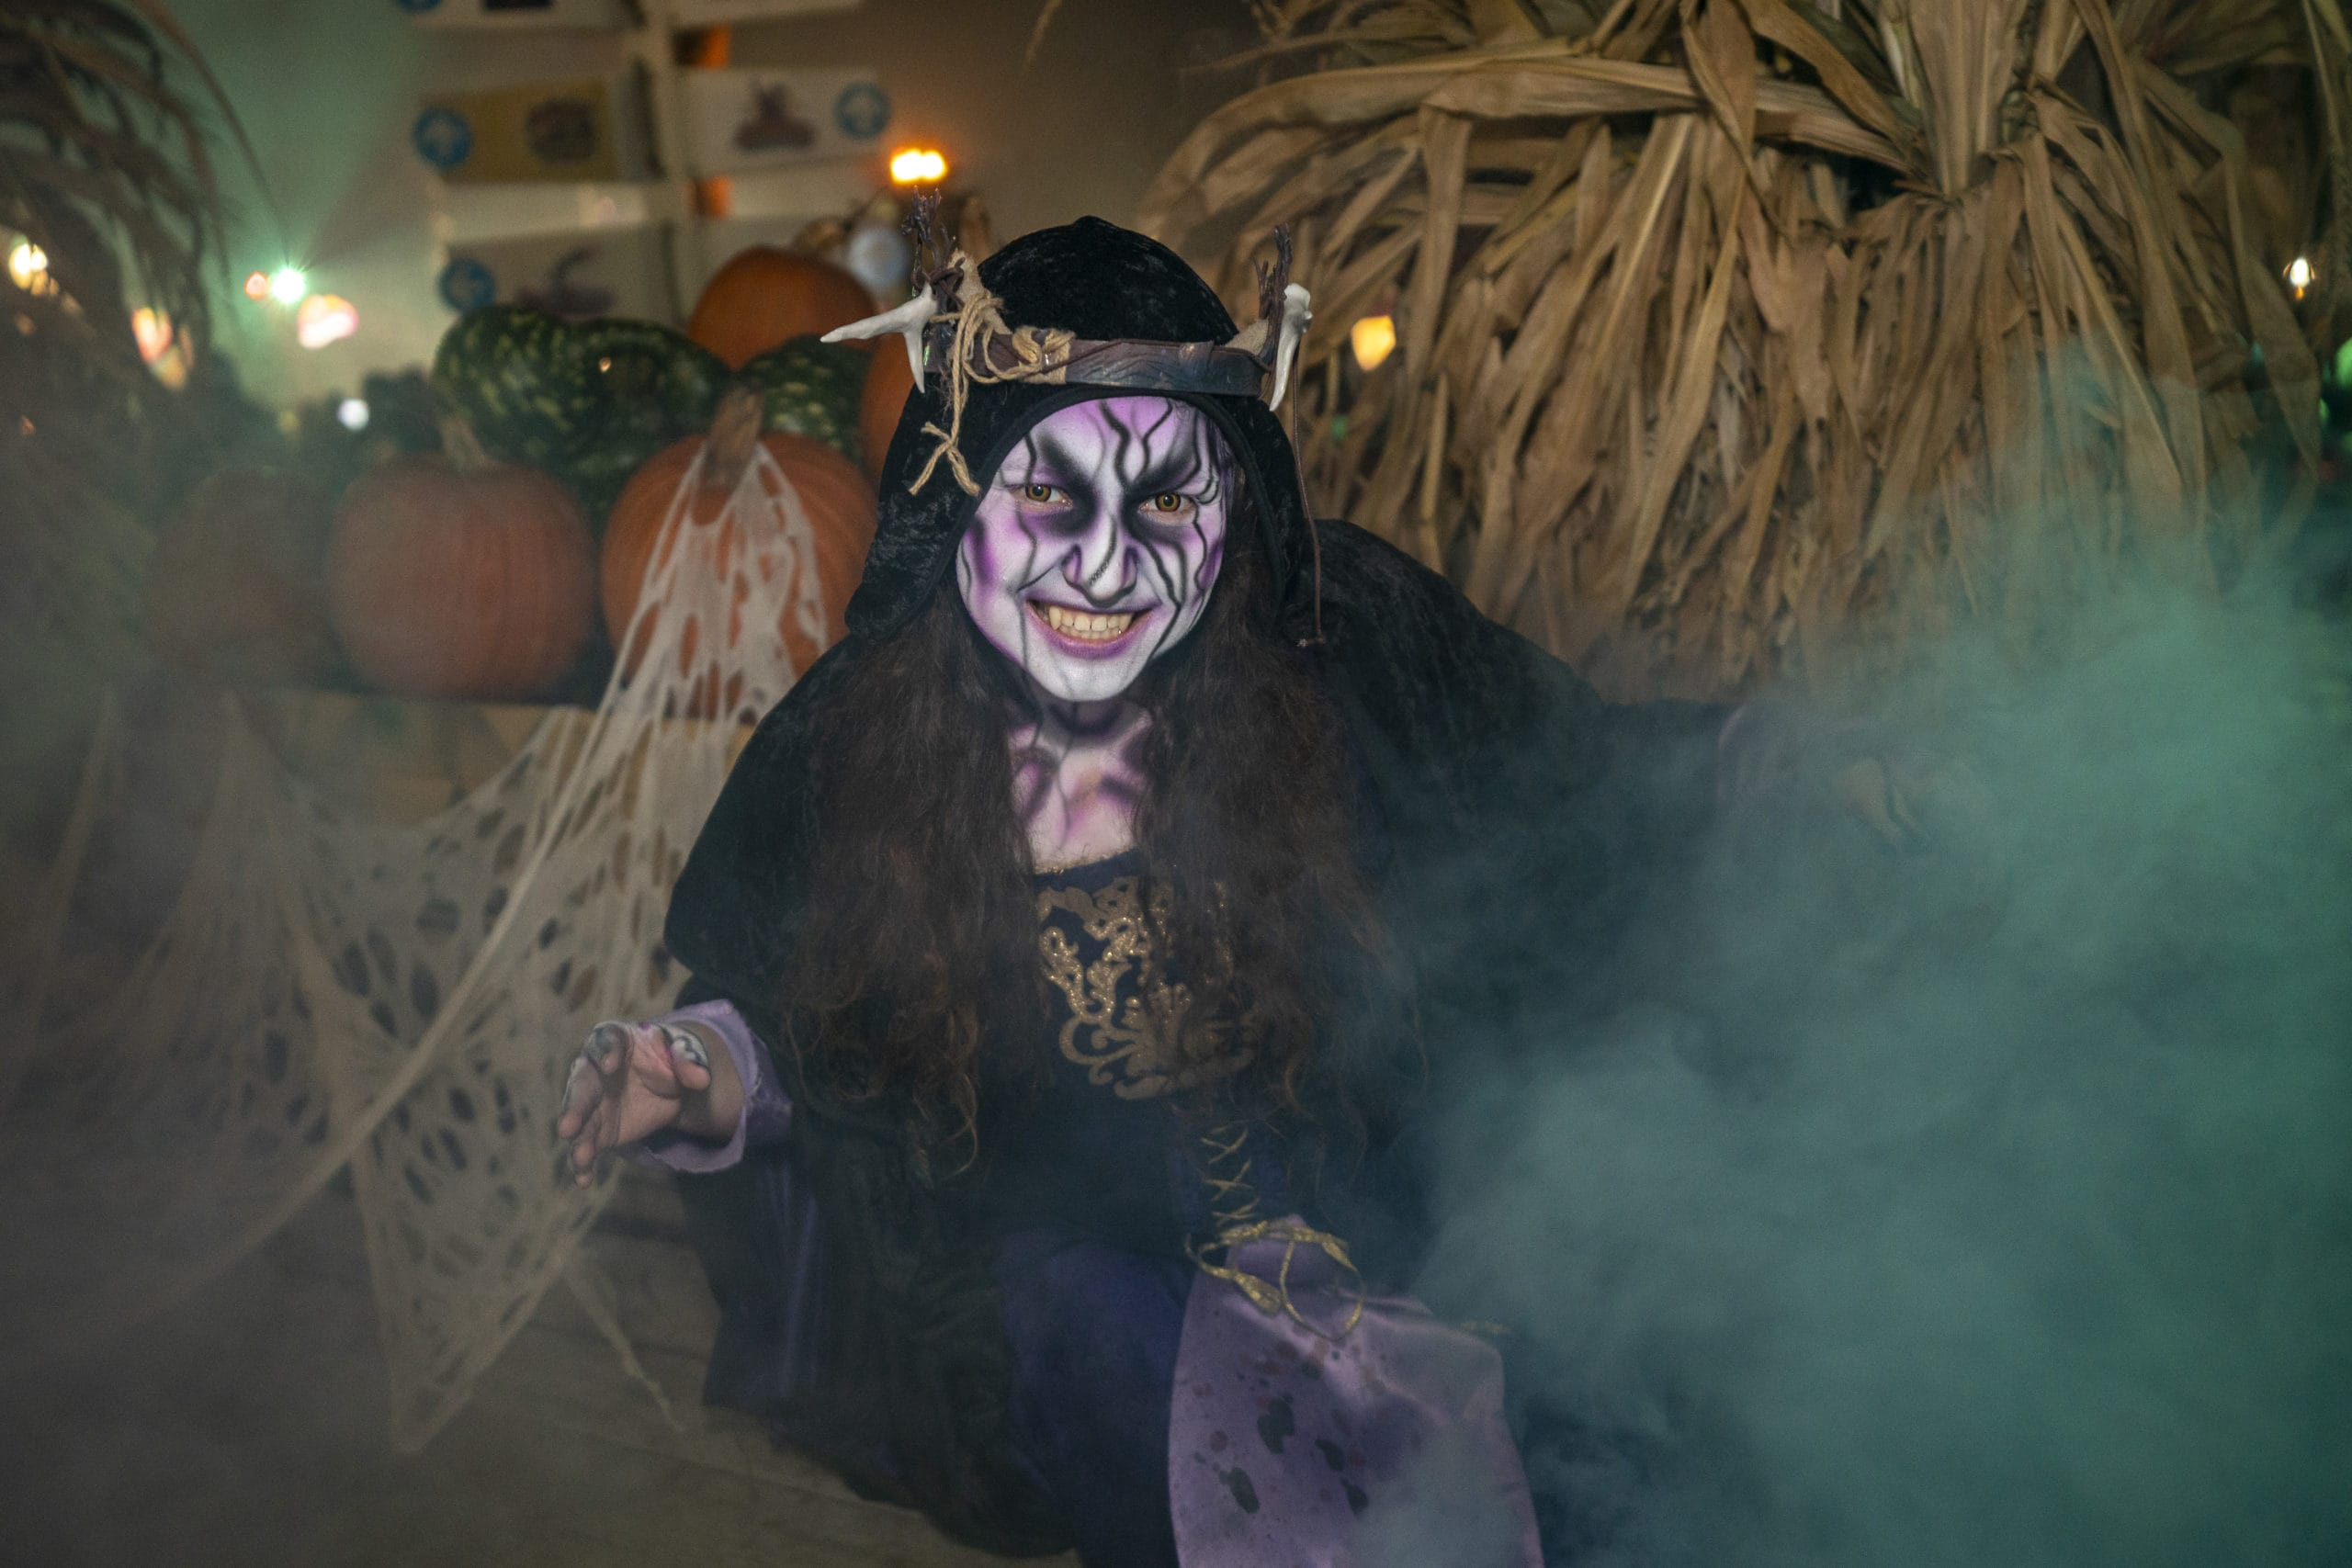 Halloween Themed Events Nj 2020 Six Flags Is Replacing Fright Fest With a New Hallowfest Experience